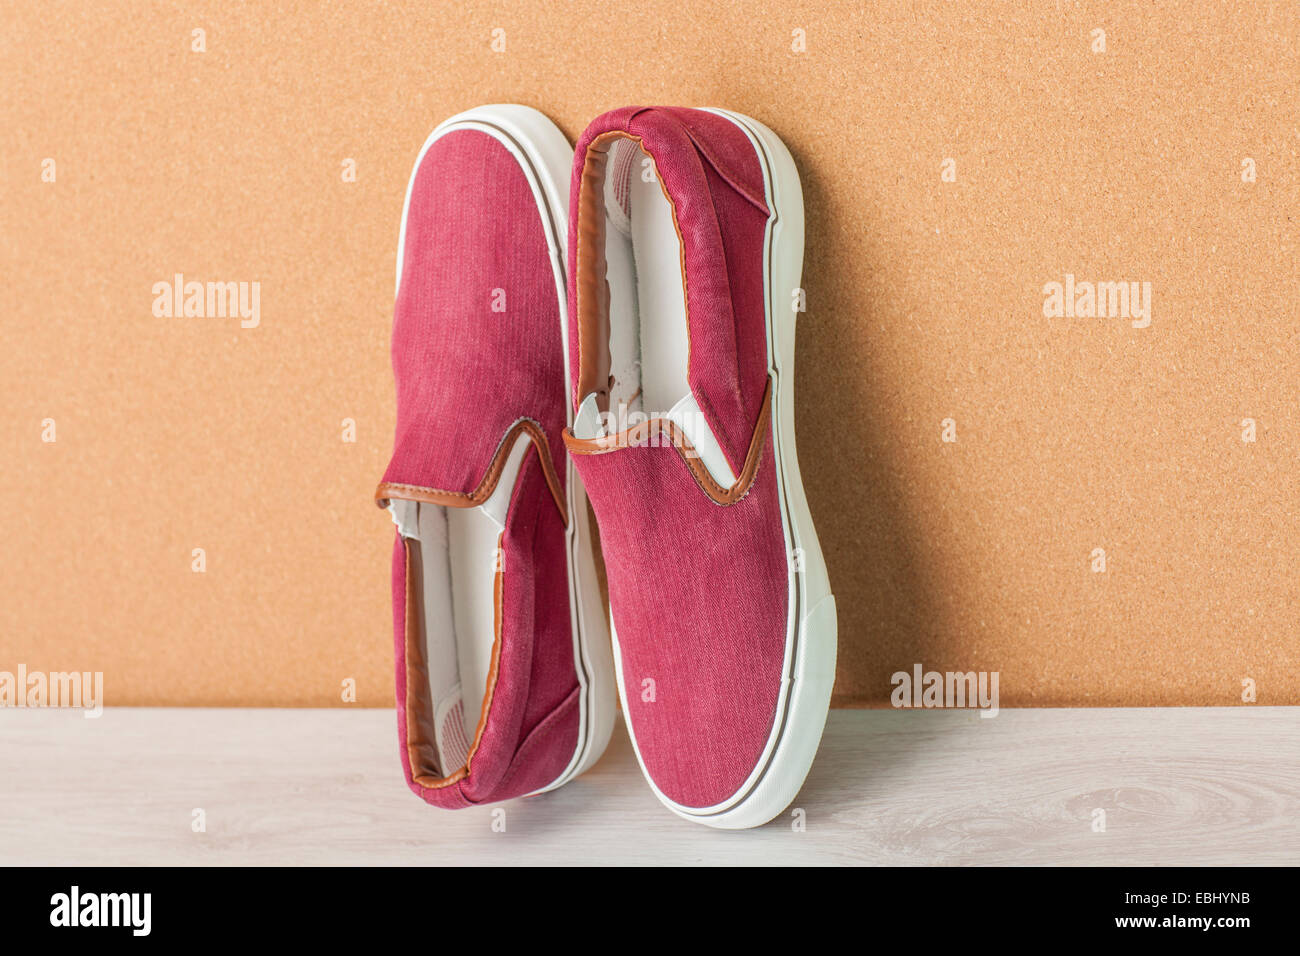 48f1a39933f Slip On Shoes Stock Photos   Slip On Shoes Stock Images - Alamy